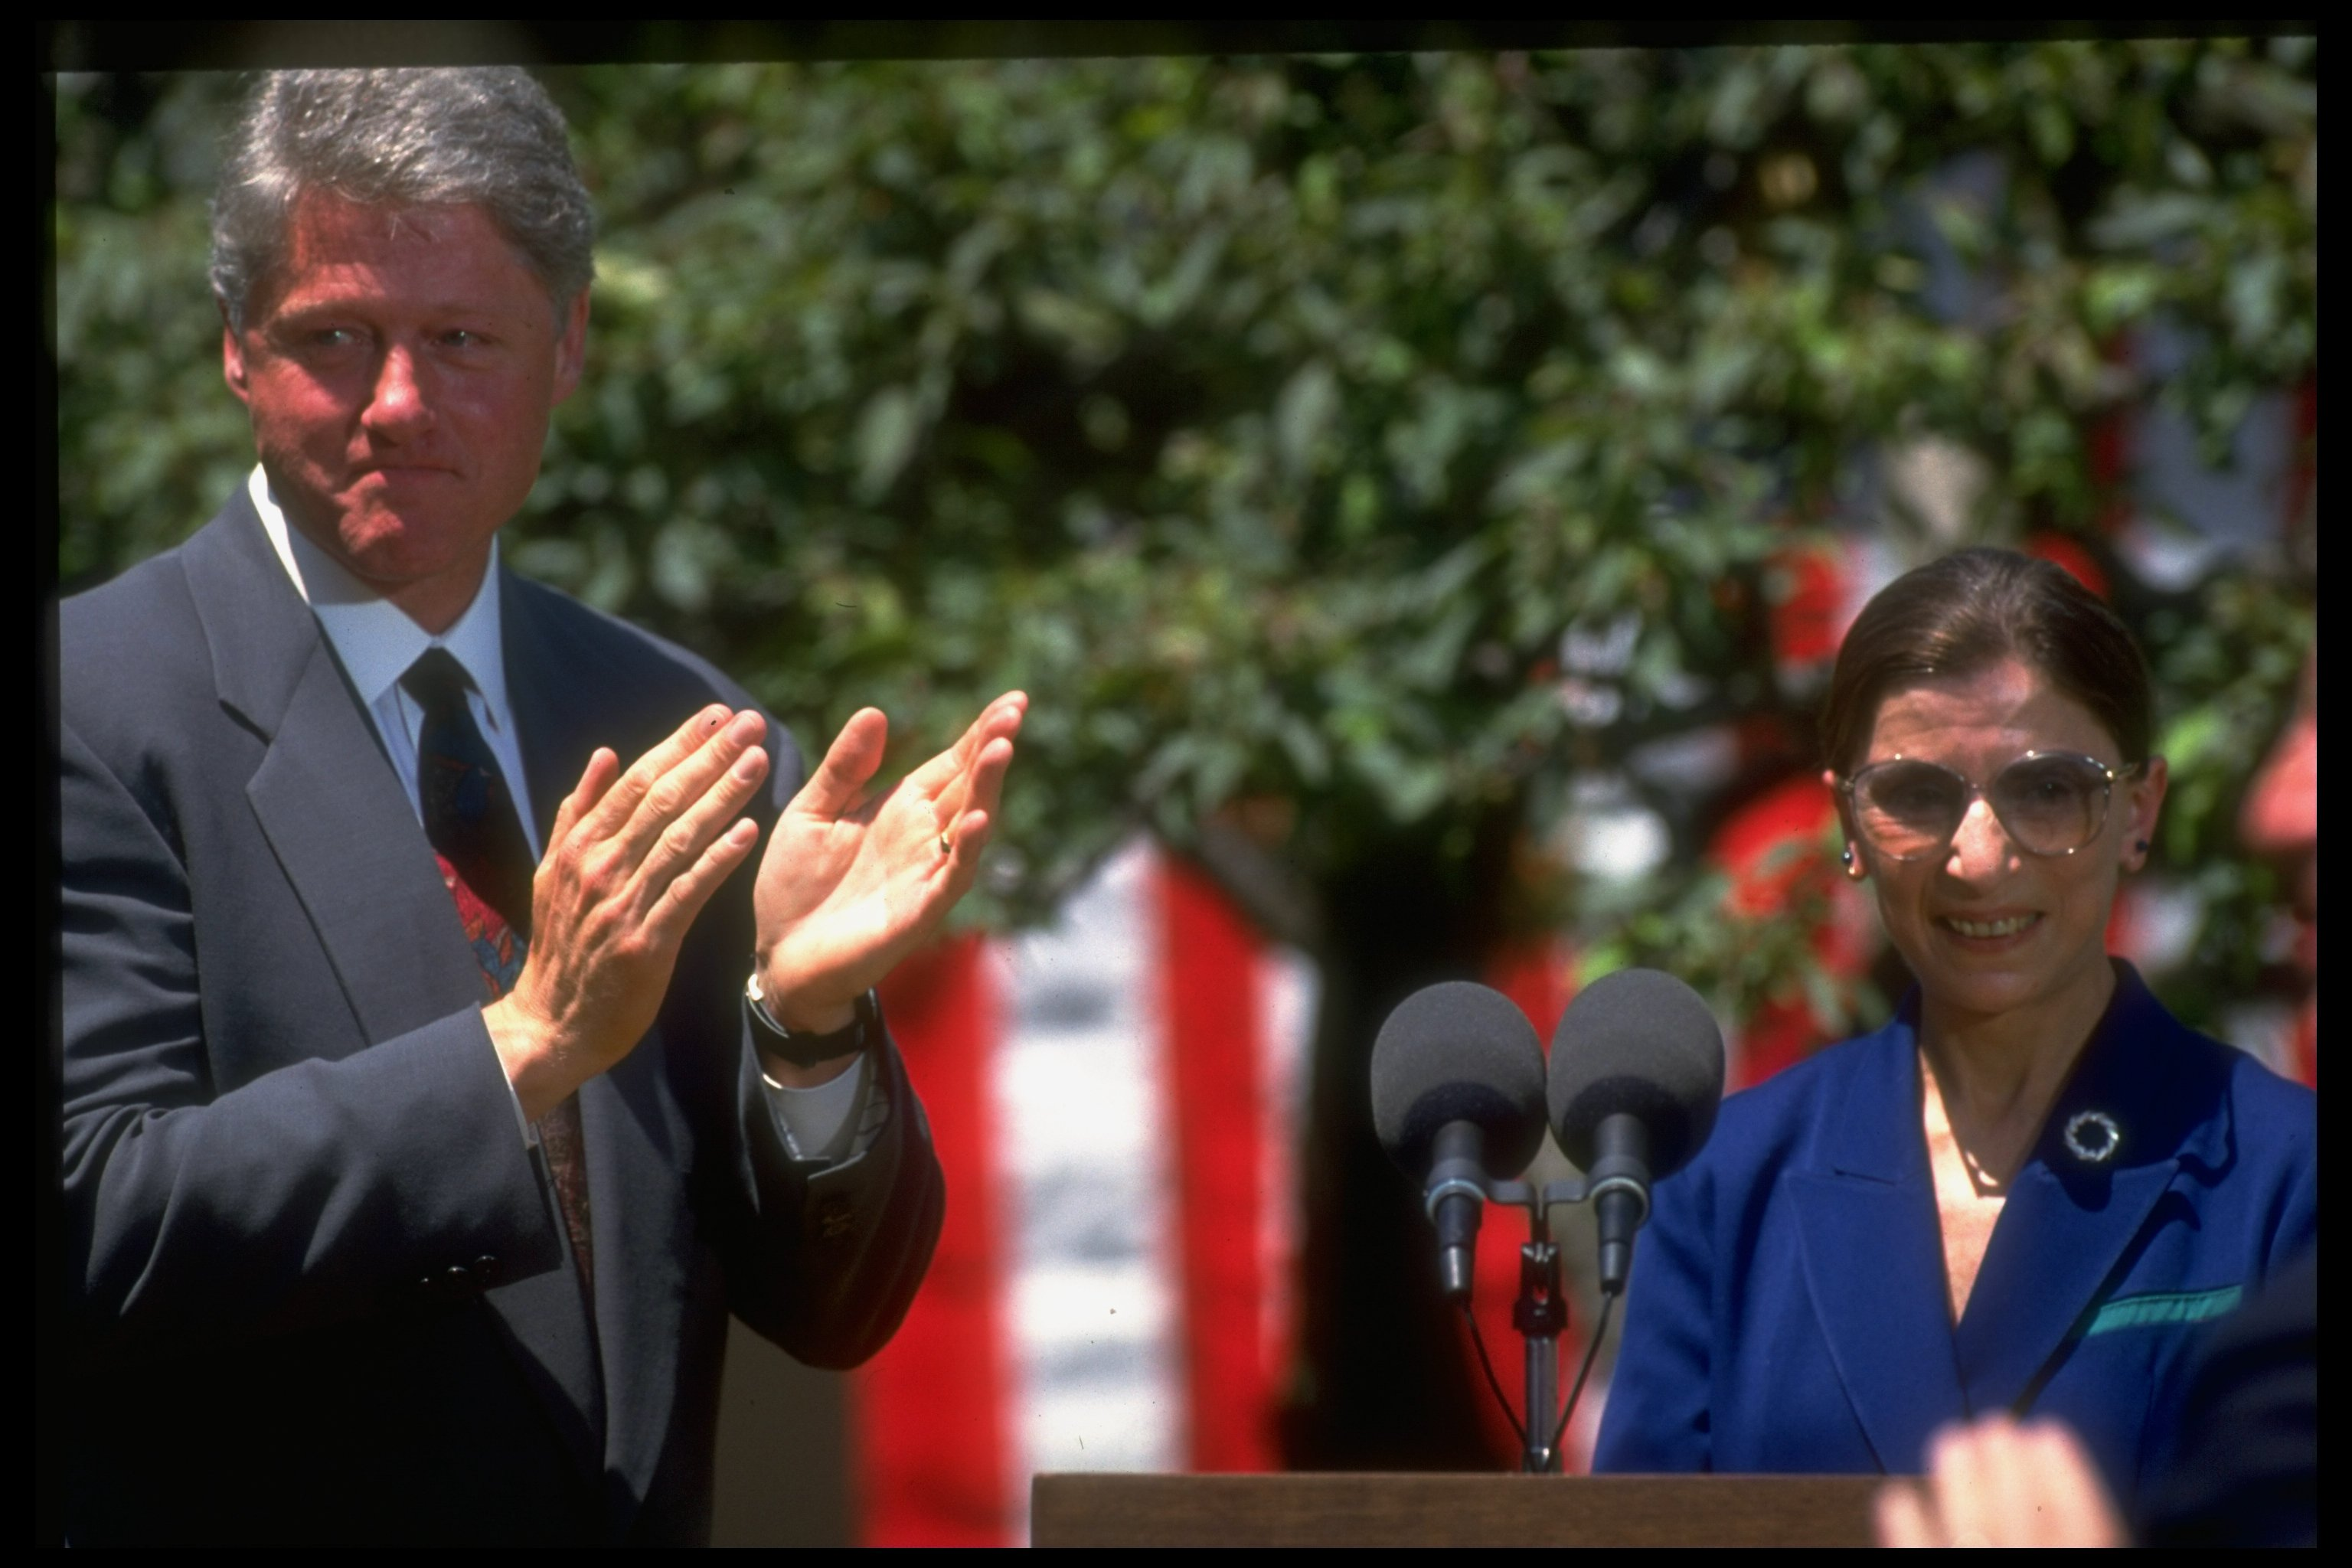 Former United States President Bill Clinton applauding Judge Ruth Bader Ginsburg after Supreme Court nominee's acceptance speech at the White House Rose Garden in Washington D.C. | Photo: Dirck Halstead/The LIFE Images Collection via Getty Images/Getty Images